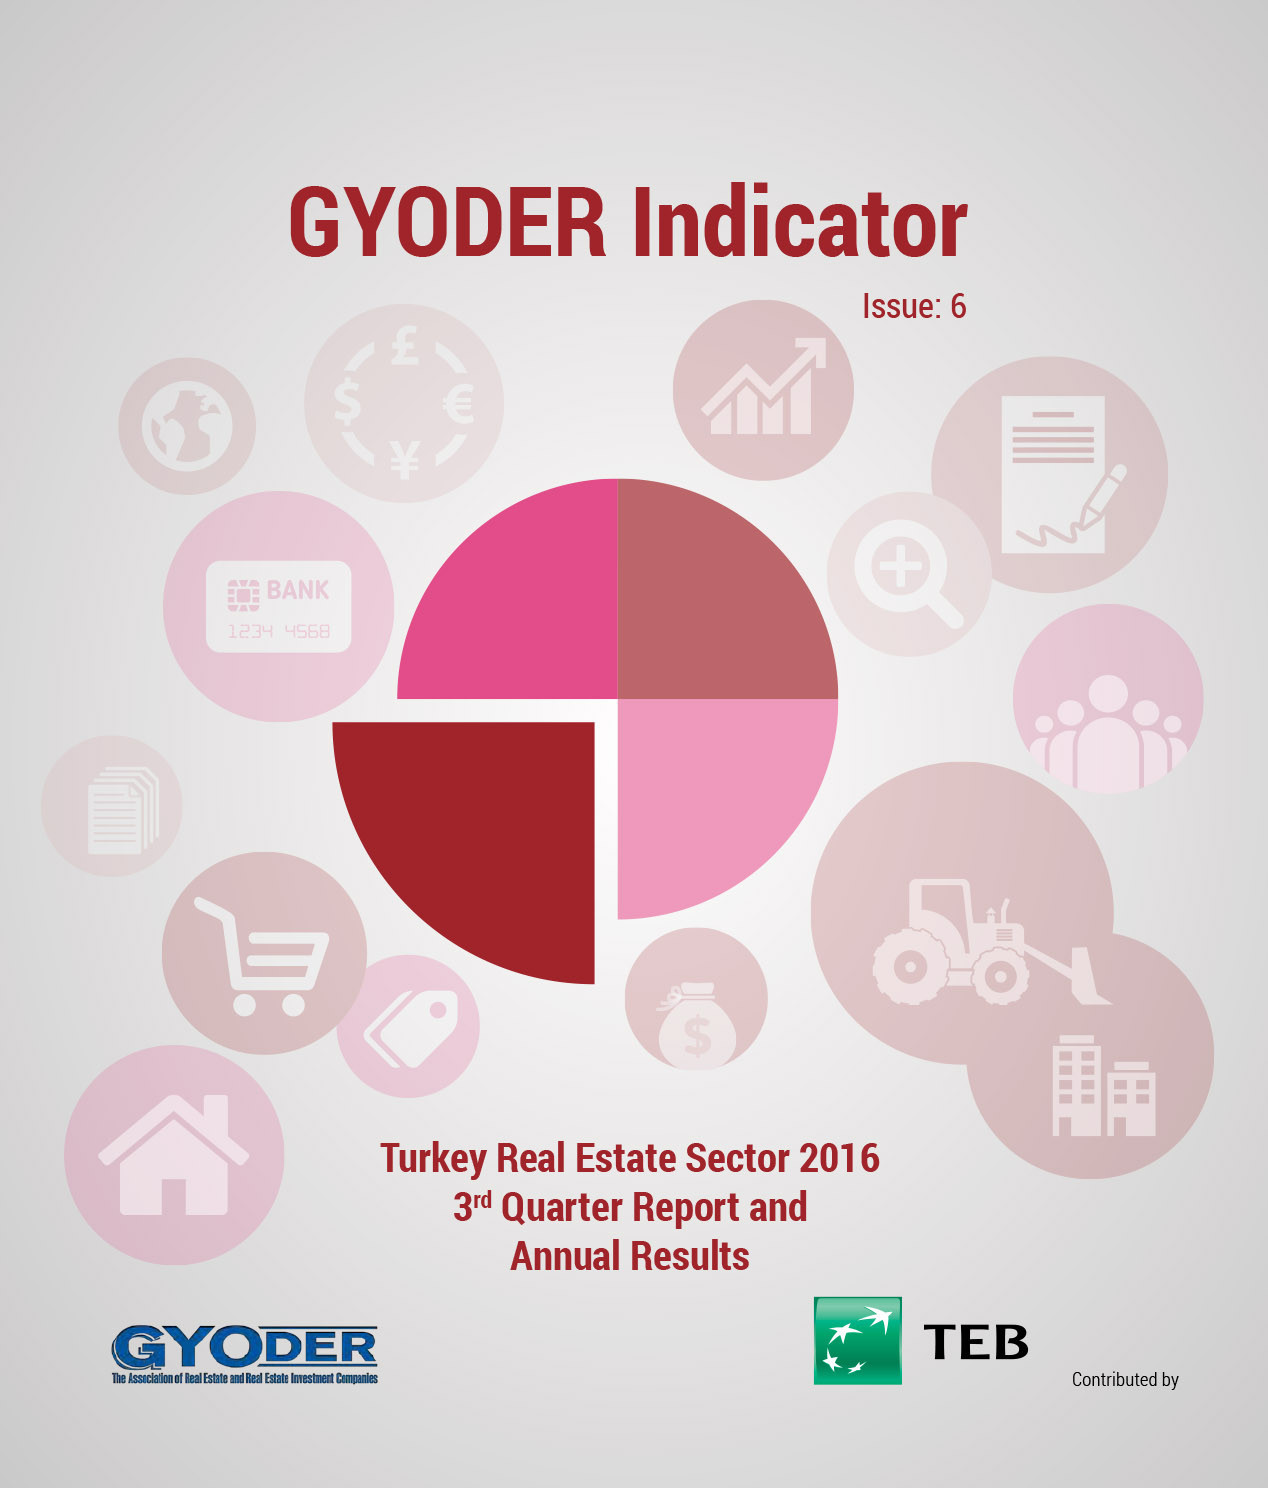 GYODER Indicator, Turkish Real Estate Sector 2016 3rd Quarter Report